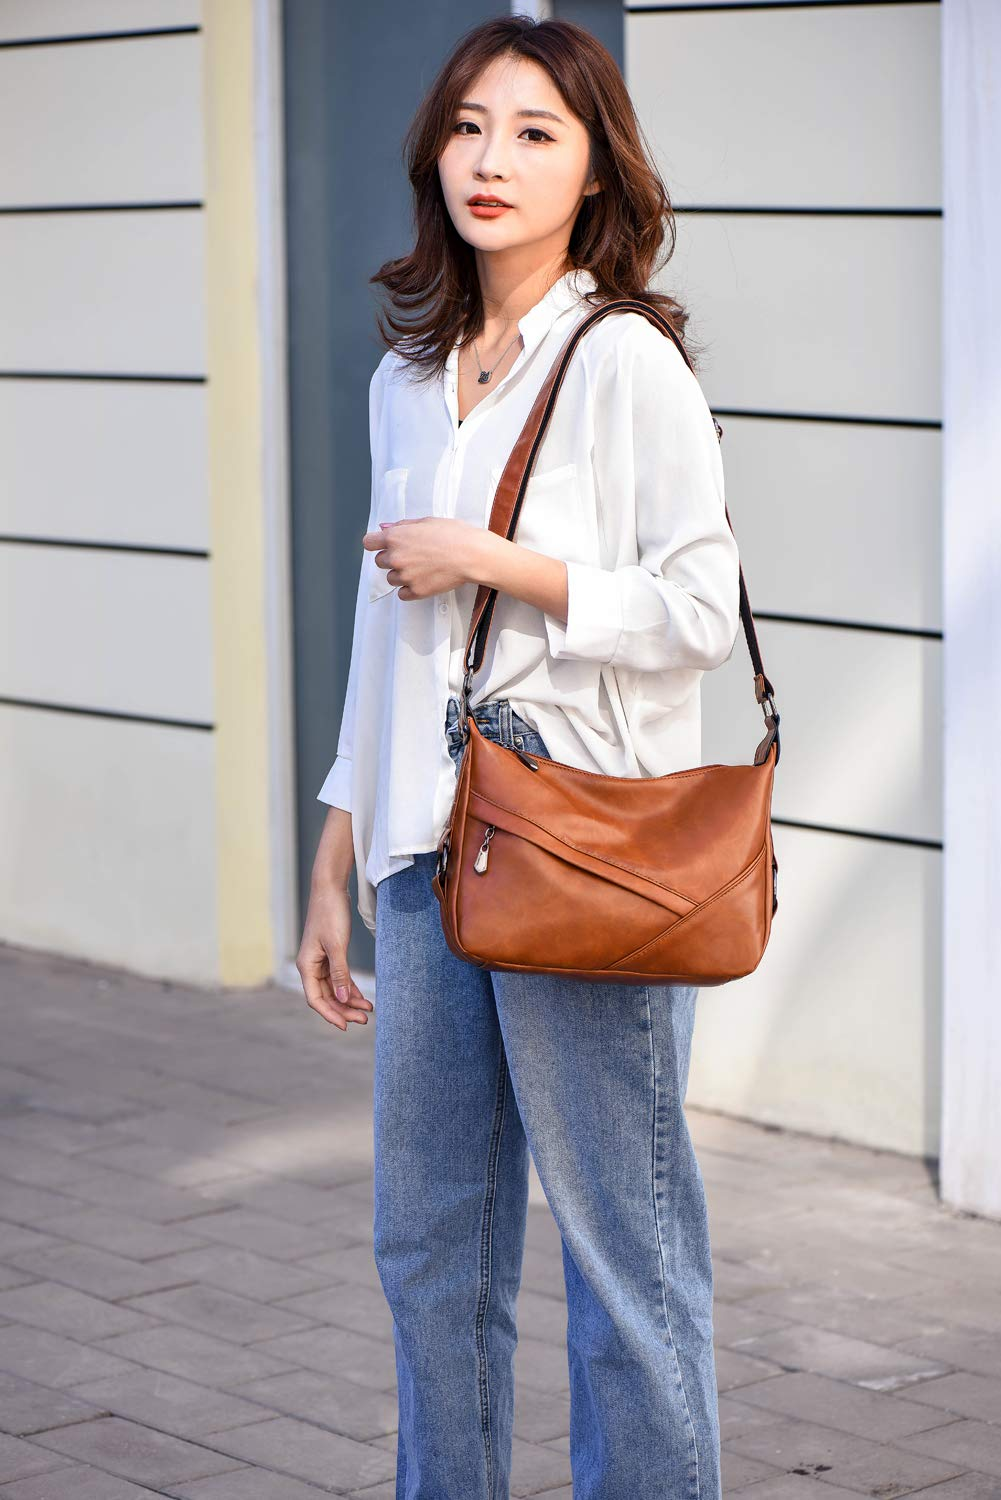 Women's Retro Sling Shoulder Bag from Covelin, Leather Crossbody Tote Handbag New Brown by Covelin (Image #3)